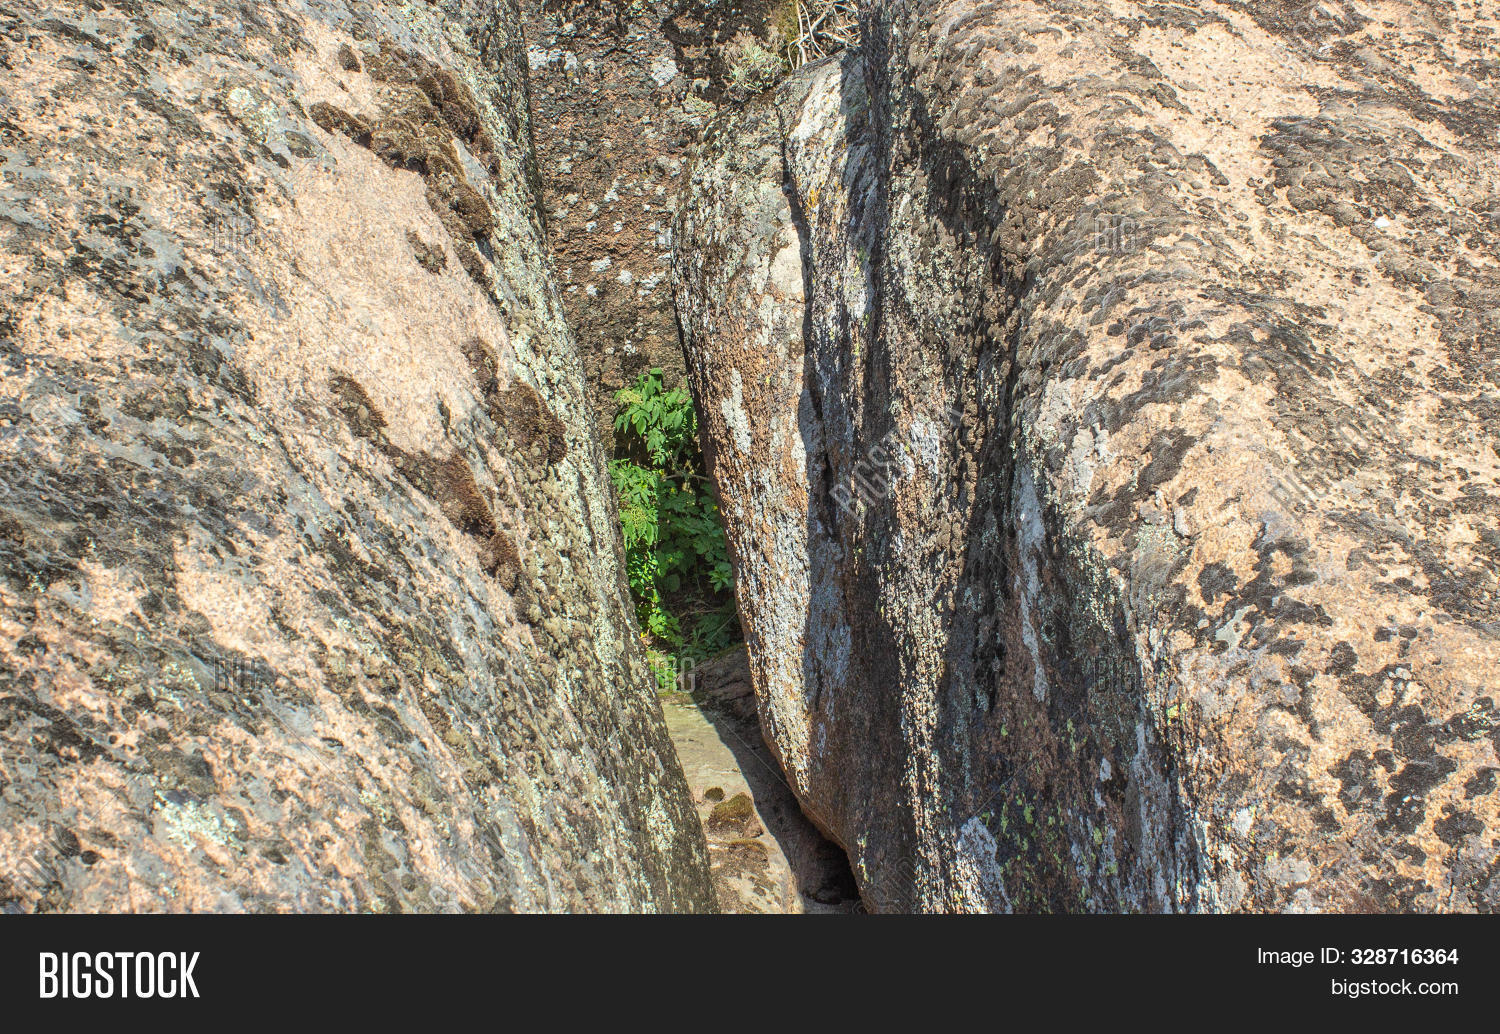 Aktove Canyon Consists Of Ancient Weathered Granite, Cut By Mertvovid River On The Depth Of More Tha